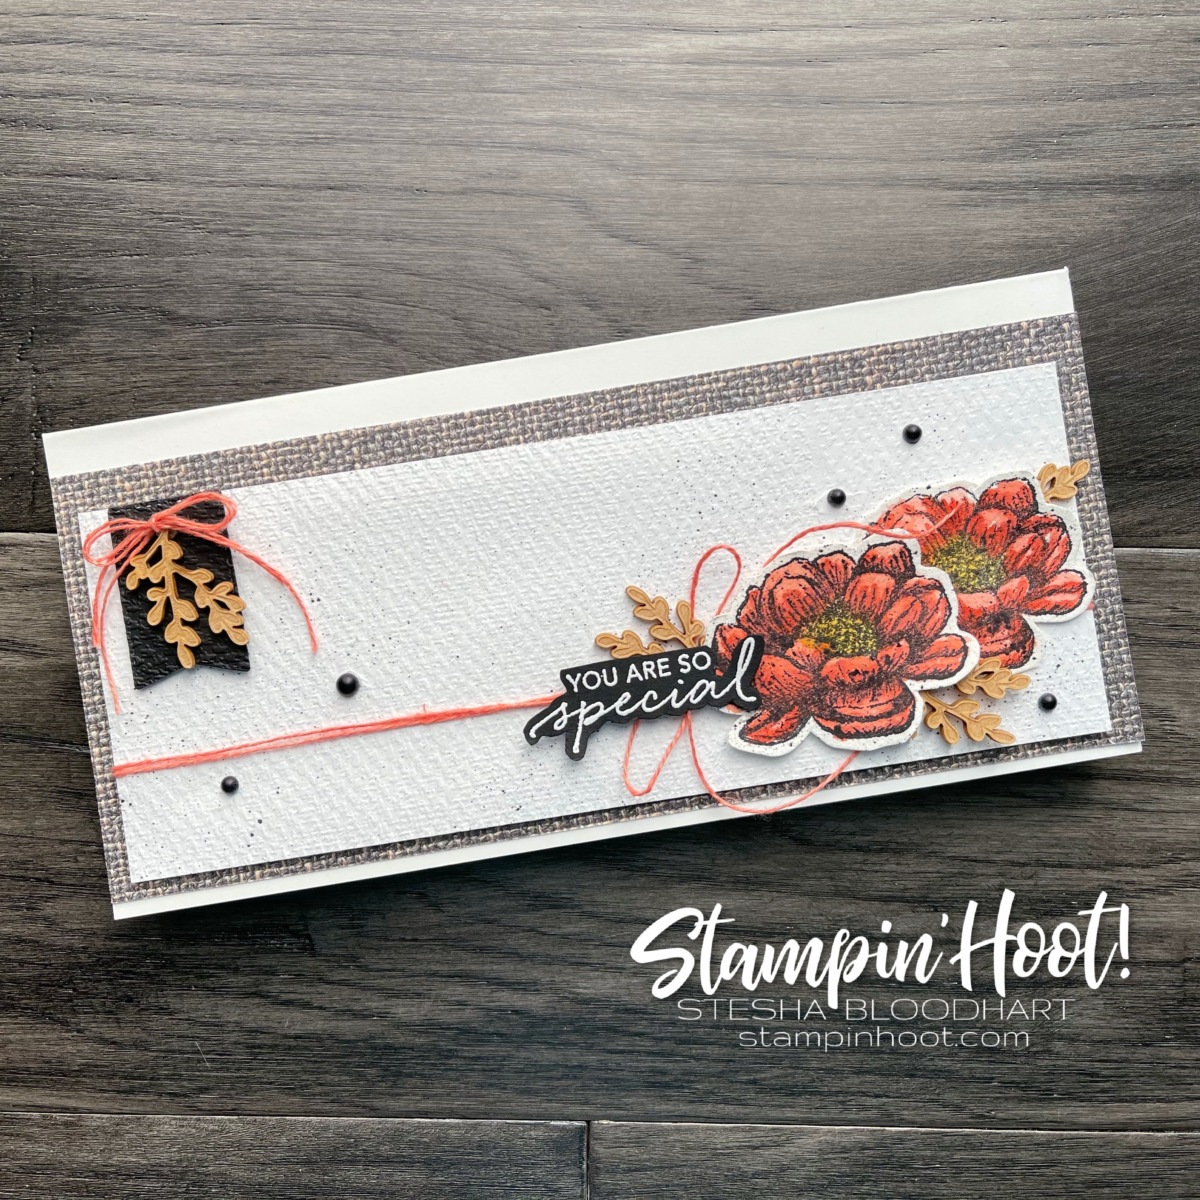 You are so special slimline card created with the Tasteful Touches Bundle from Stampin' Up! Card by Stesha Bloodhart, Stampin' Hoot!